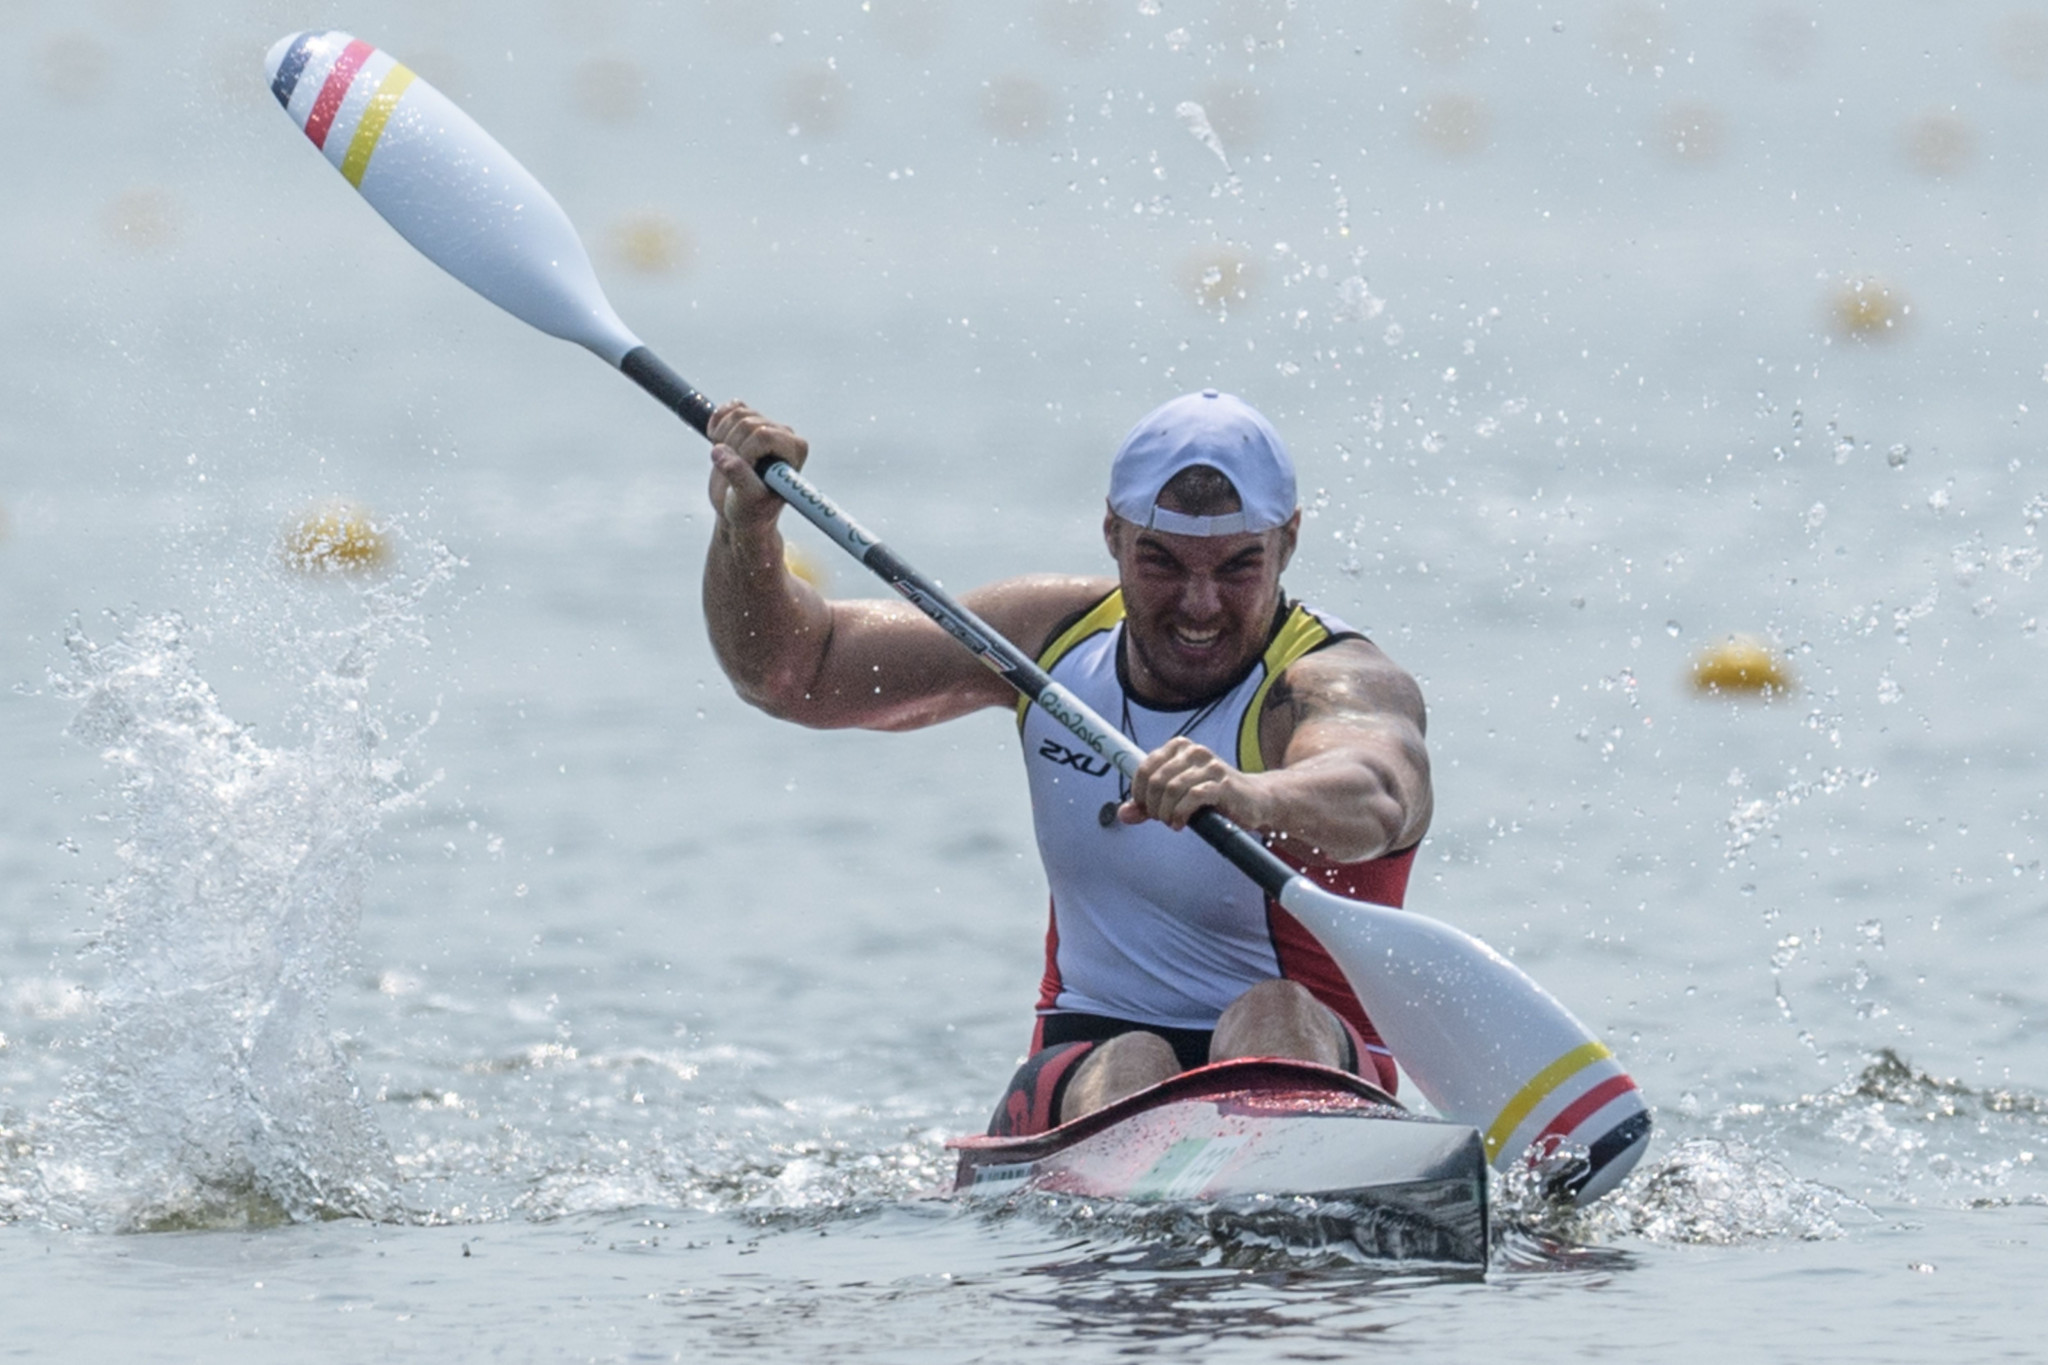 International Canoe Federation award 2022 World Championships in both Olympic disciplines